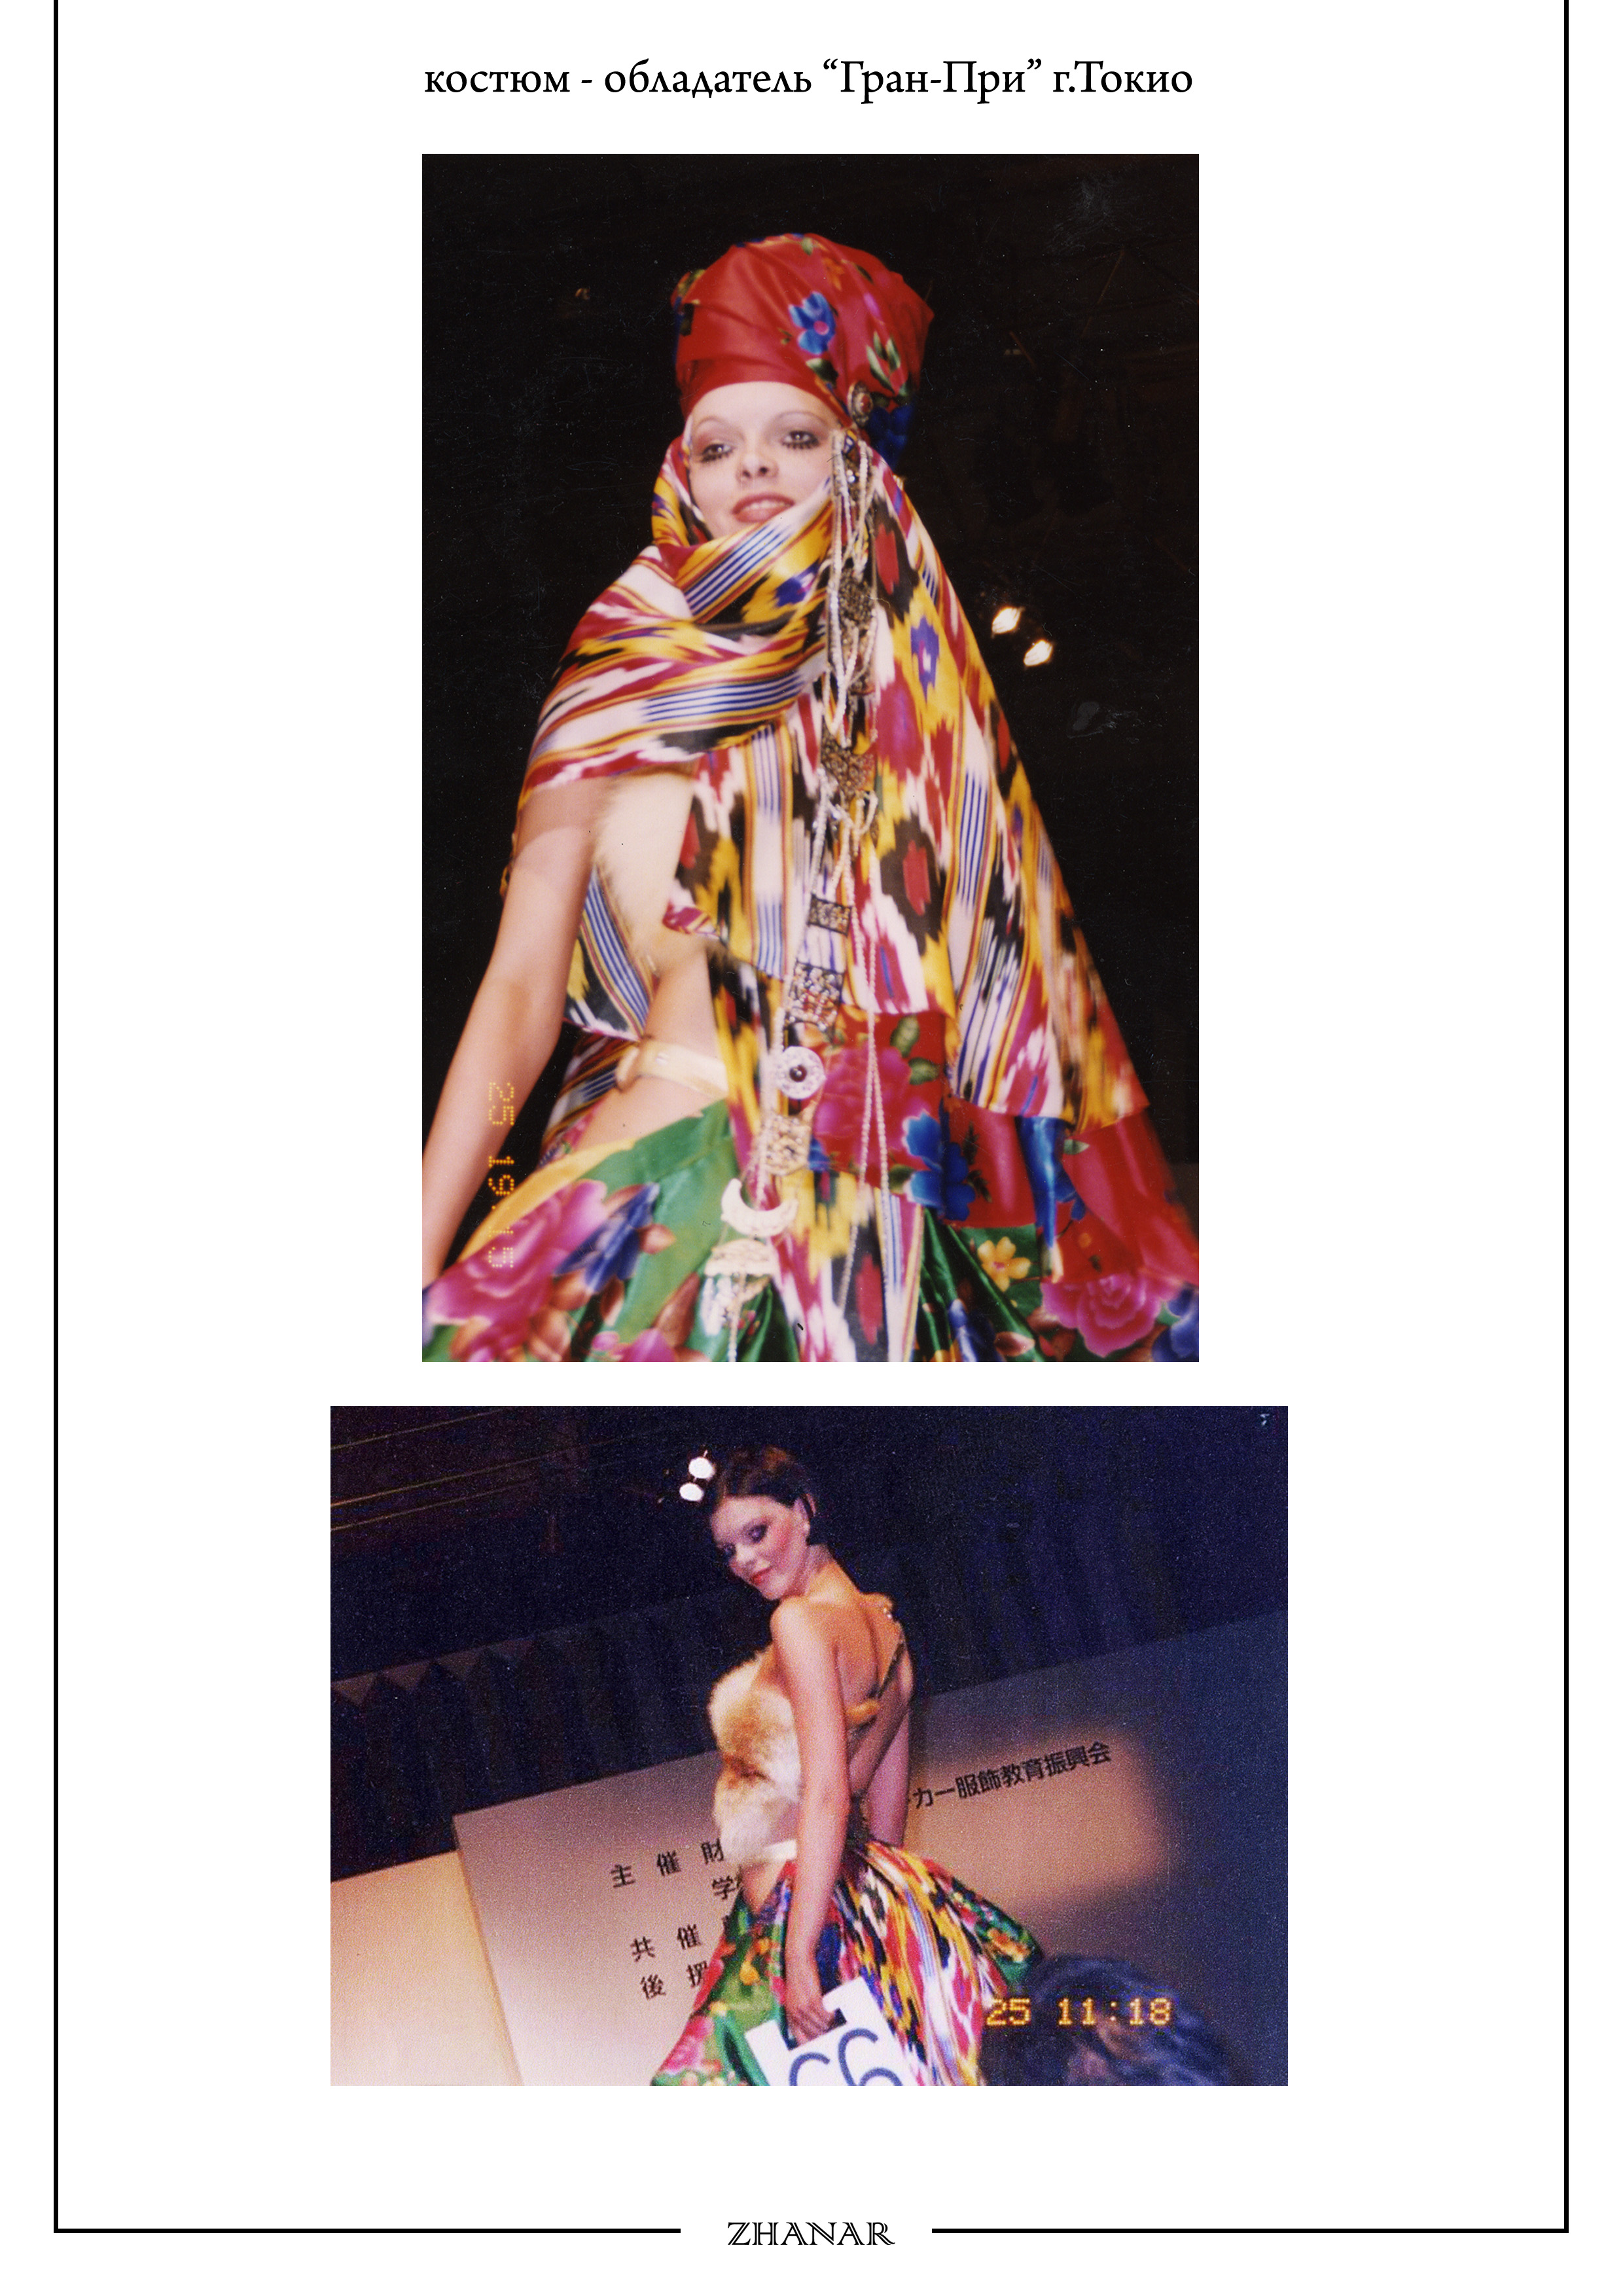 Zhanar Yerkingaliyeva's first big fashion triumph was in Tokyo with an outfit with blinding colors. Photo courtesy of Zhanar Yerkingaliyeva